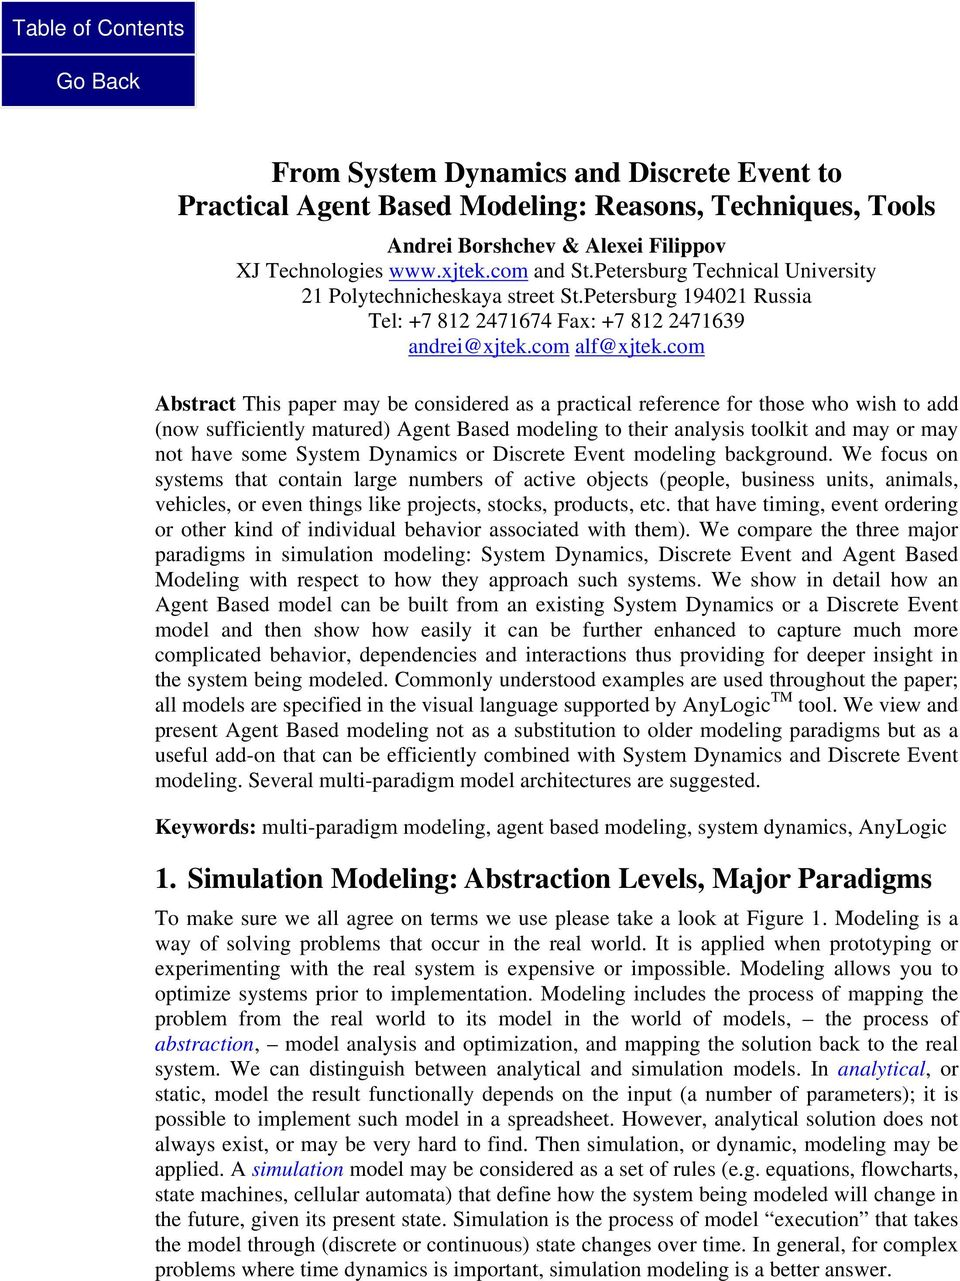 com Abstract This paper may be considered as a practical reference for those who wish to add (now sufficiently matured) Agent Based modeling to their analysis toolkit and may or may not have some